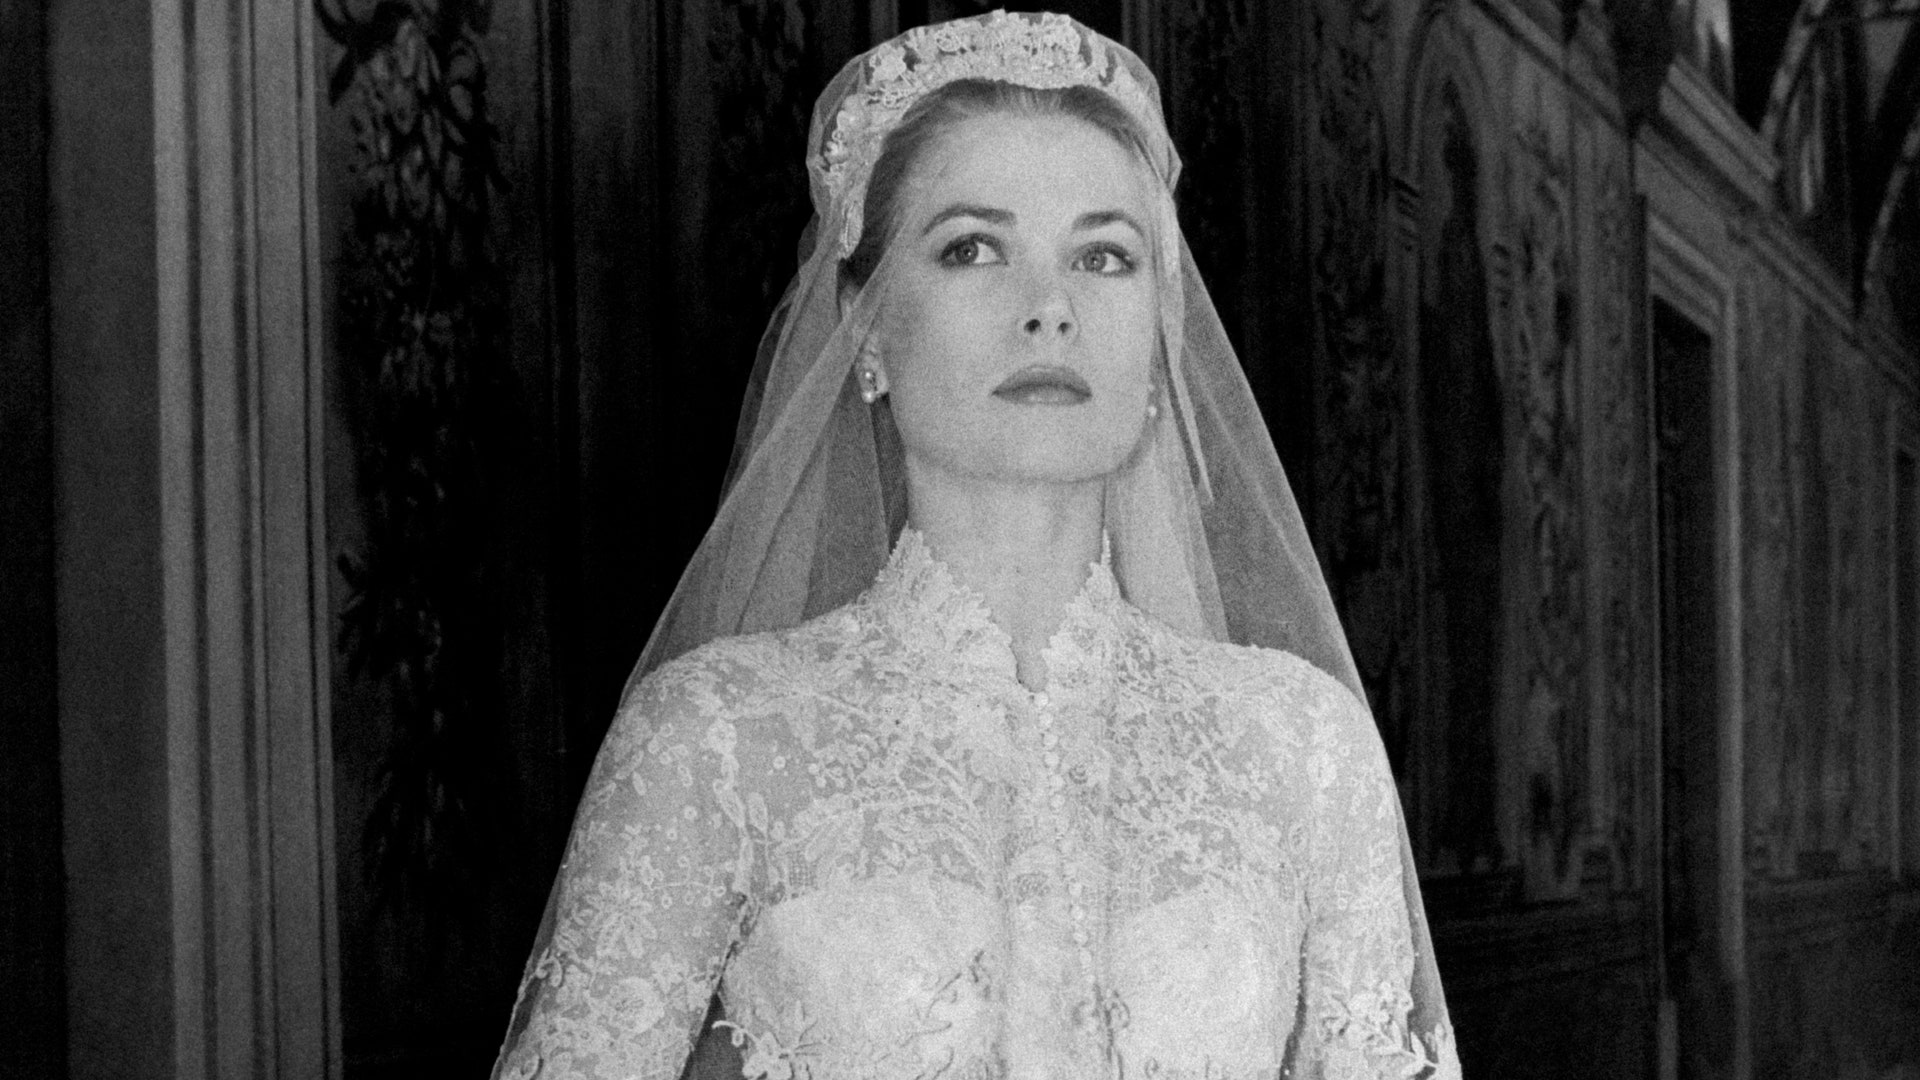 Grace Kelly story (and curiosity) of the wedding dress